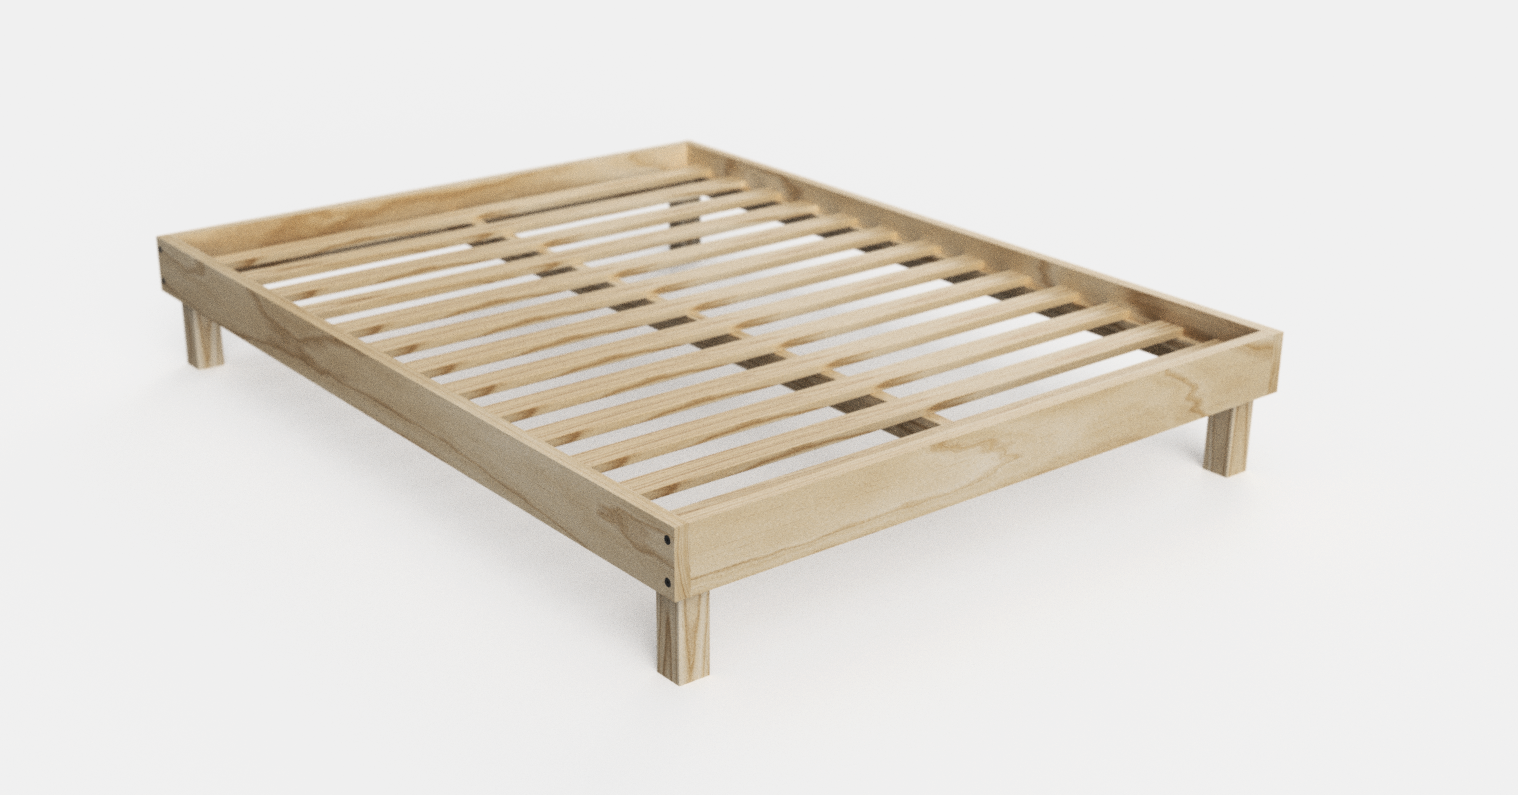 Bed frame render in Fusion 360